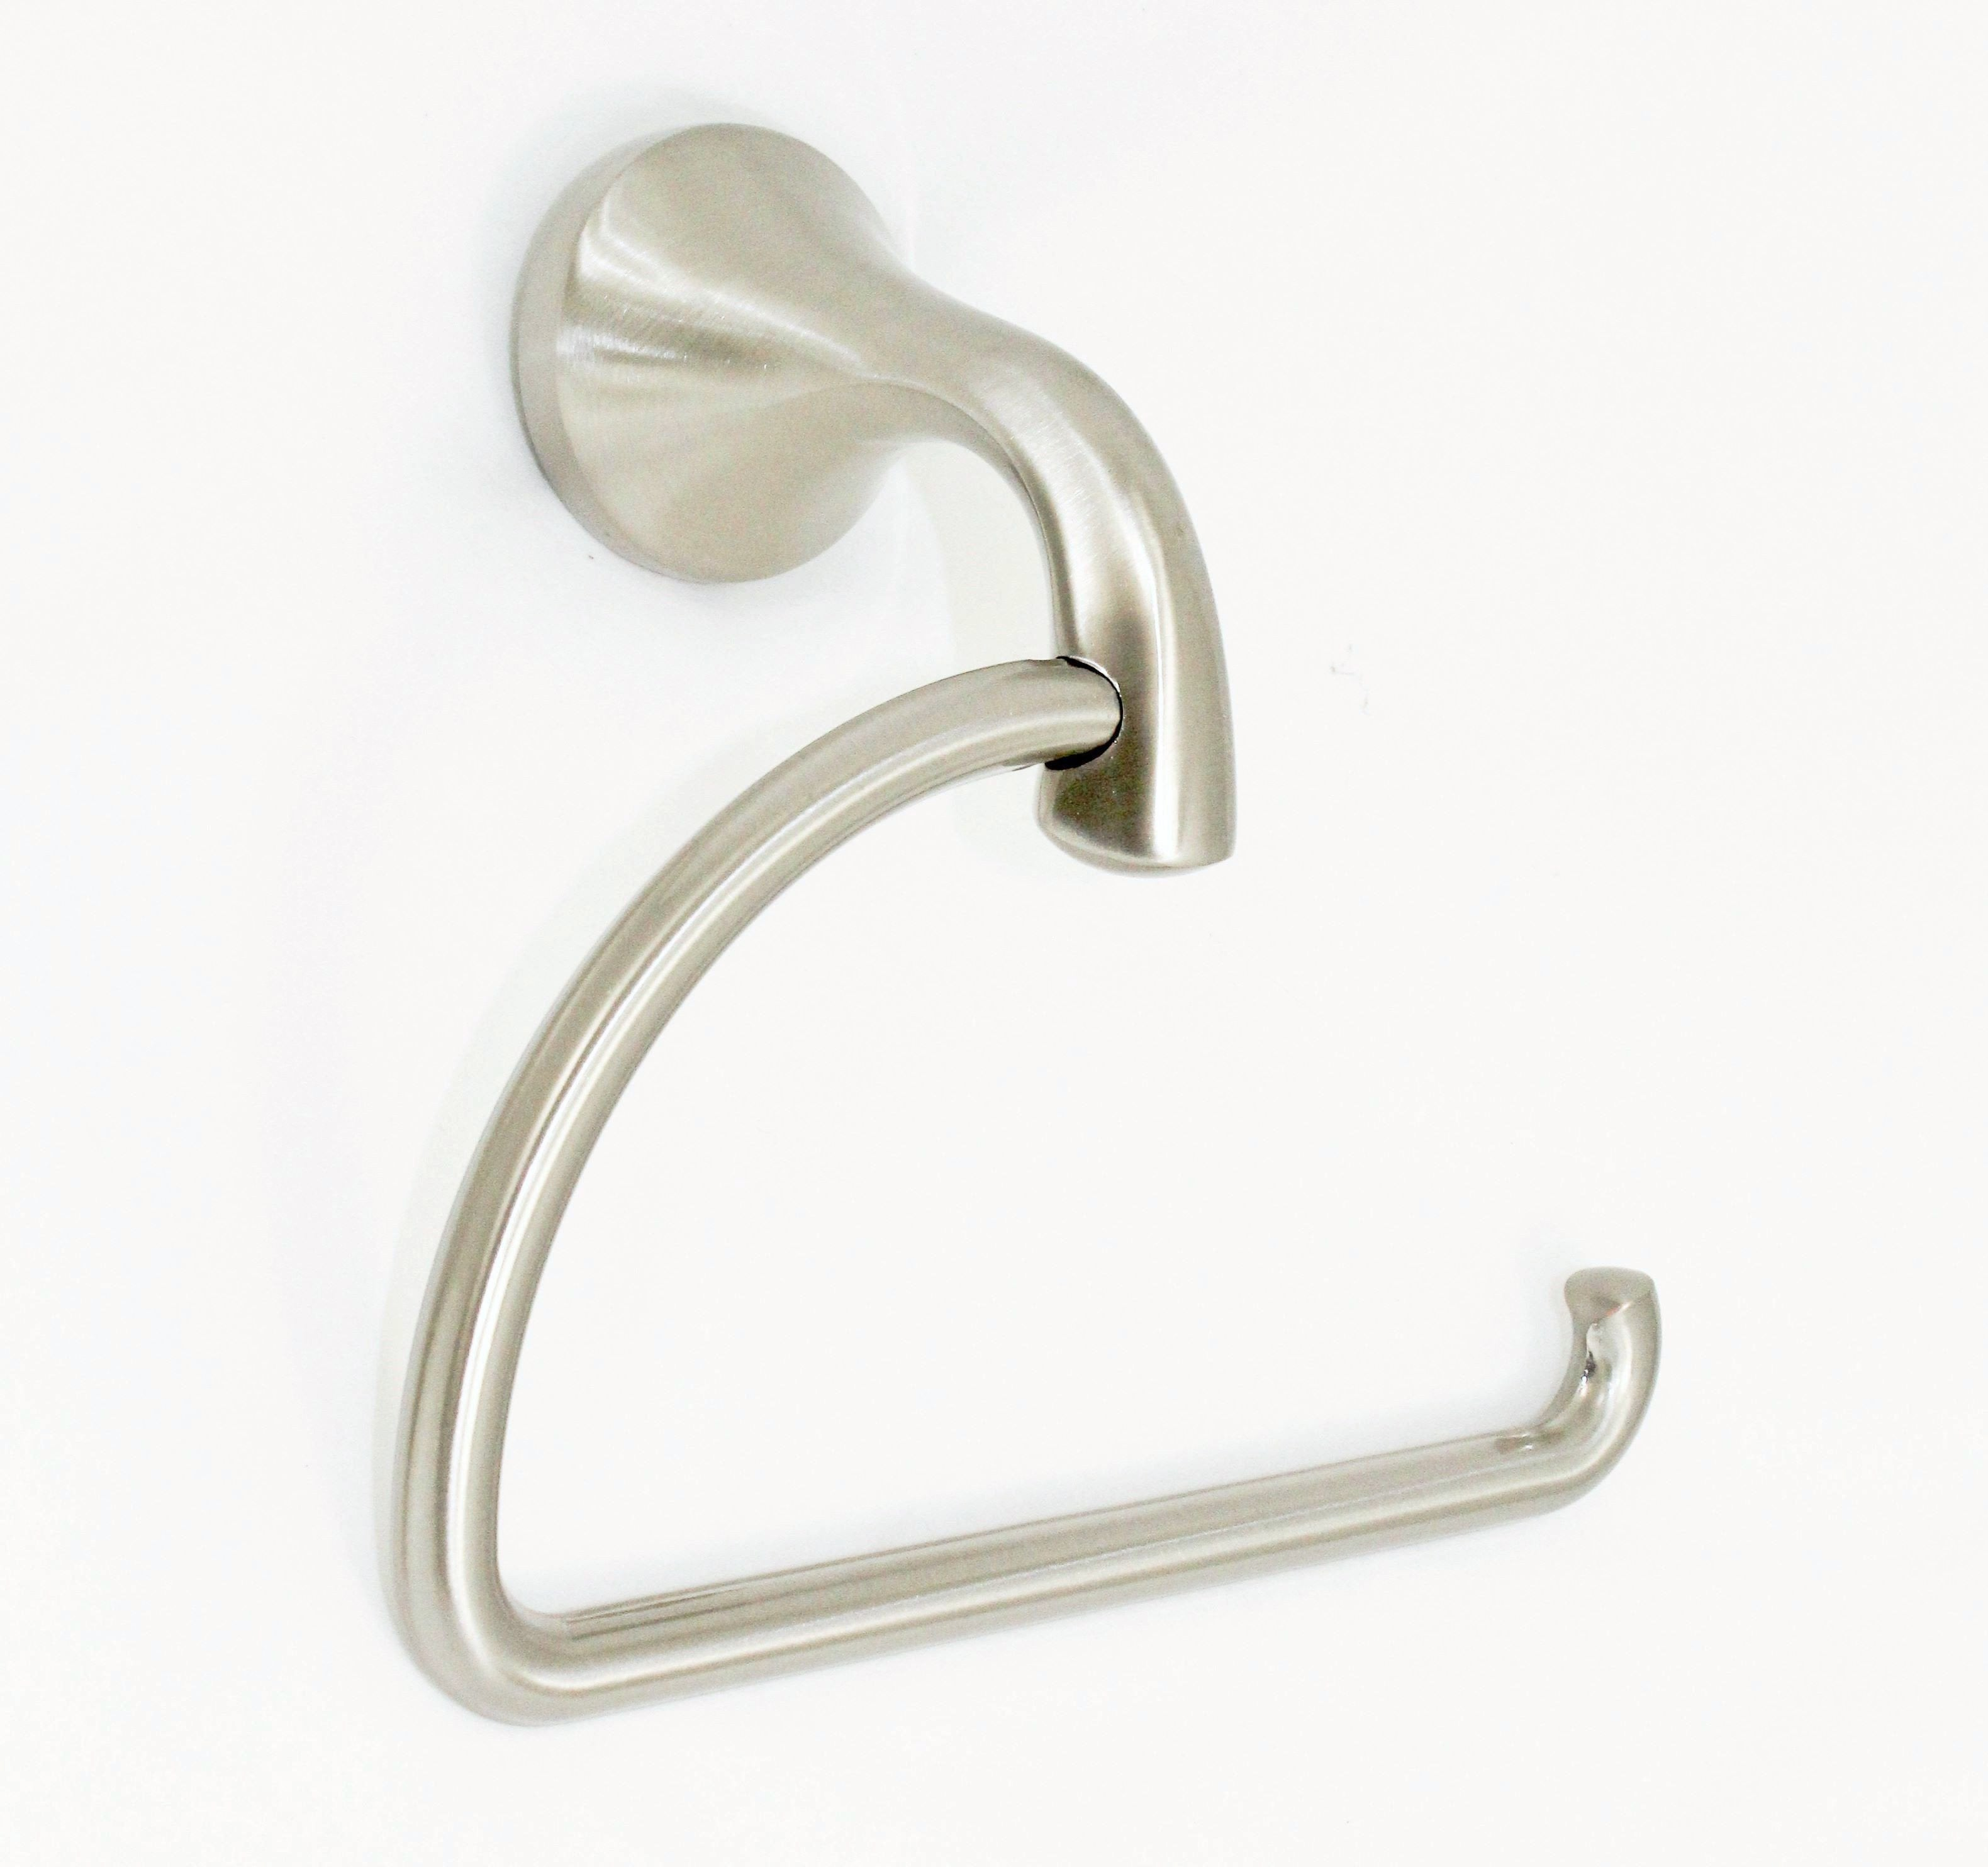 SMB7651-SN - Toilet Paper Holder in Satin Nickel, Memphis Collection